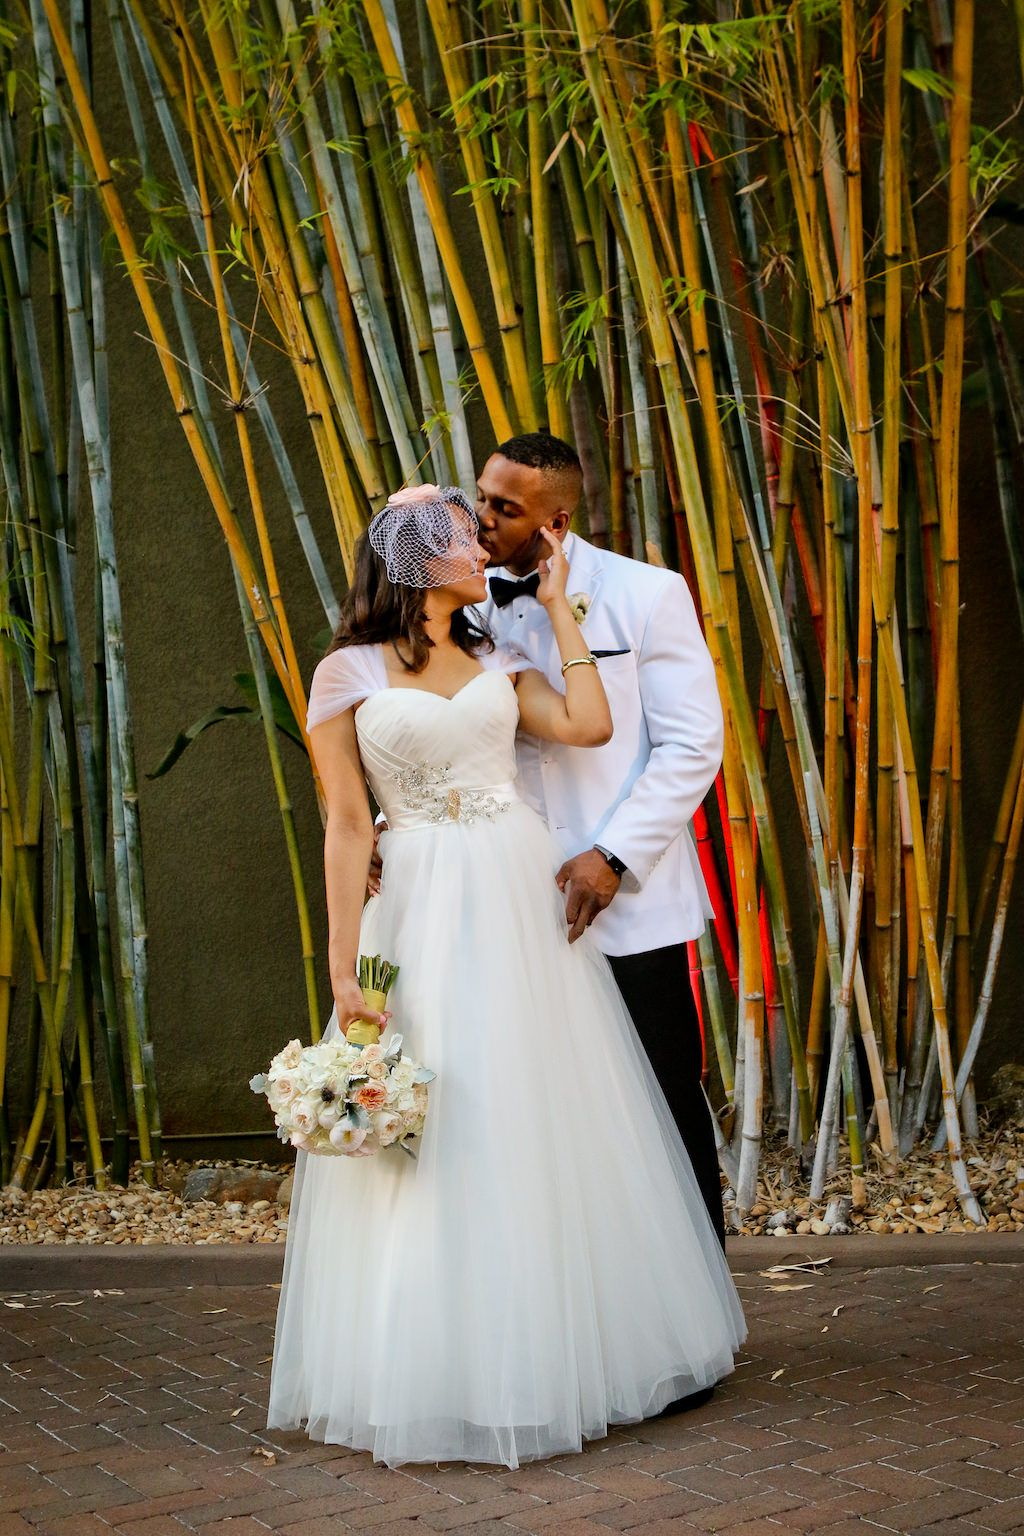 Elegant Black and White Outdoor St Pete Wedding Portrait, Bride in Cap Sleeve Ballgown Dress with Birdcage Veil and White and Pink Floral Bouquet, Groom in White Tuxedo Jacket with Black Pants and Bowtie | Bamboo Garden Courtyard Ceremony at Unique Downtown St Pete Venue NOVA 535Elegant Black and White Outdoor St Pete Wedding Portrait, Bride in Cap Sleeve Ballgown Dress with Birdcage Veil and White and Pink Floral Bouquet, Groom in White Tuxedo Jacket with Black Pants and Bowtie | Bamboo Garden Courtyard Ceremony at Unique Downtown St Pete Venue NOVA 535